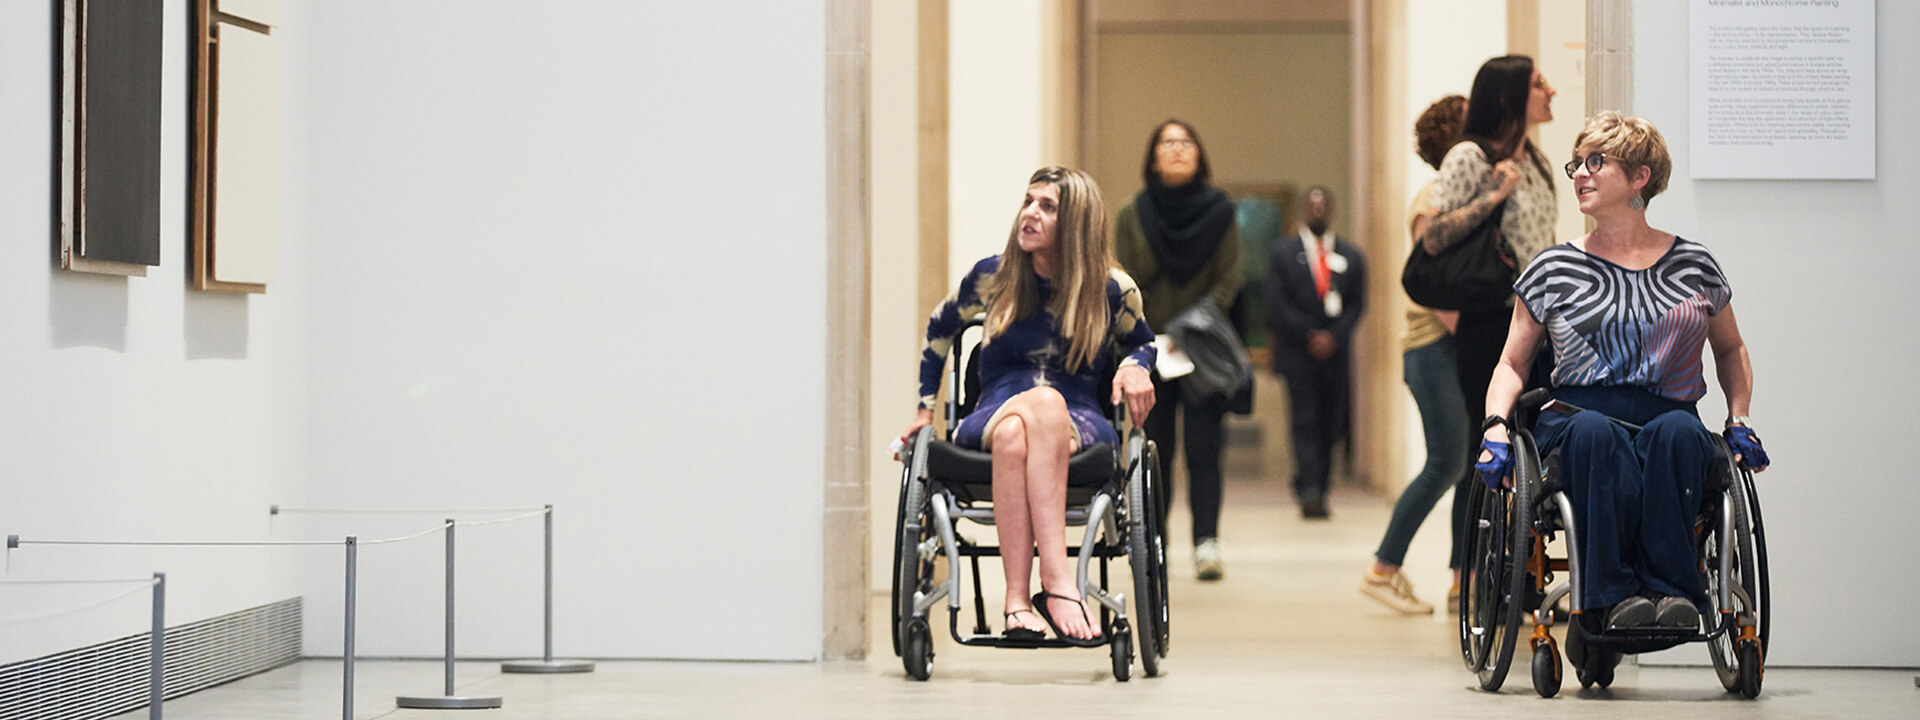 Two visitors in wheelchairs explore the galleries